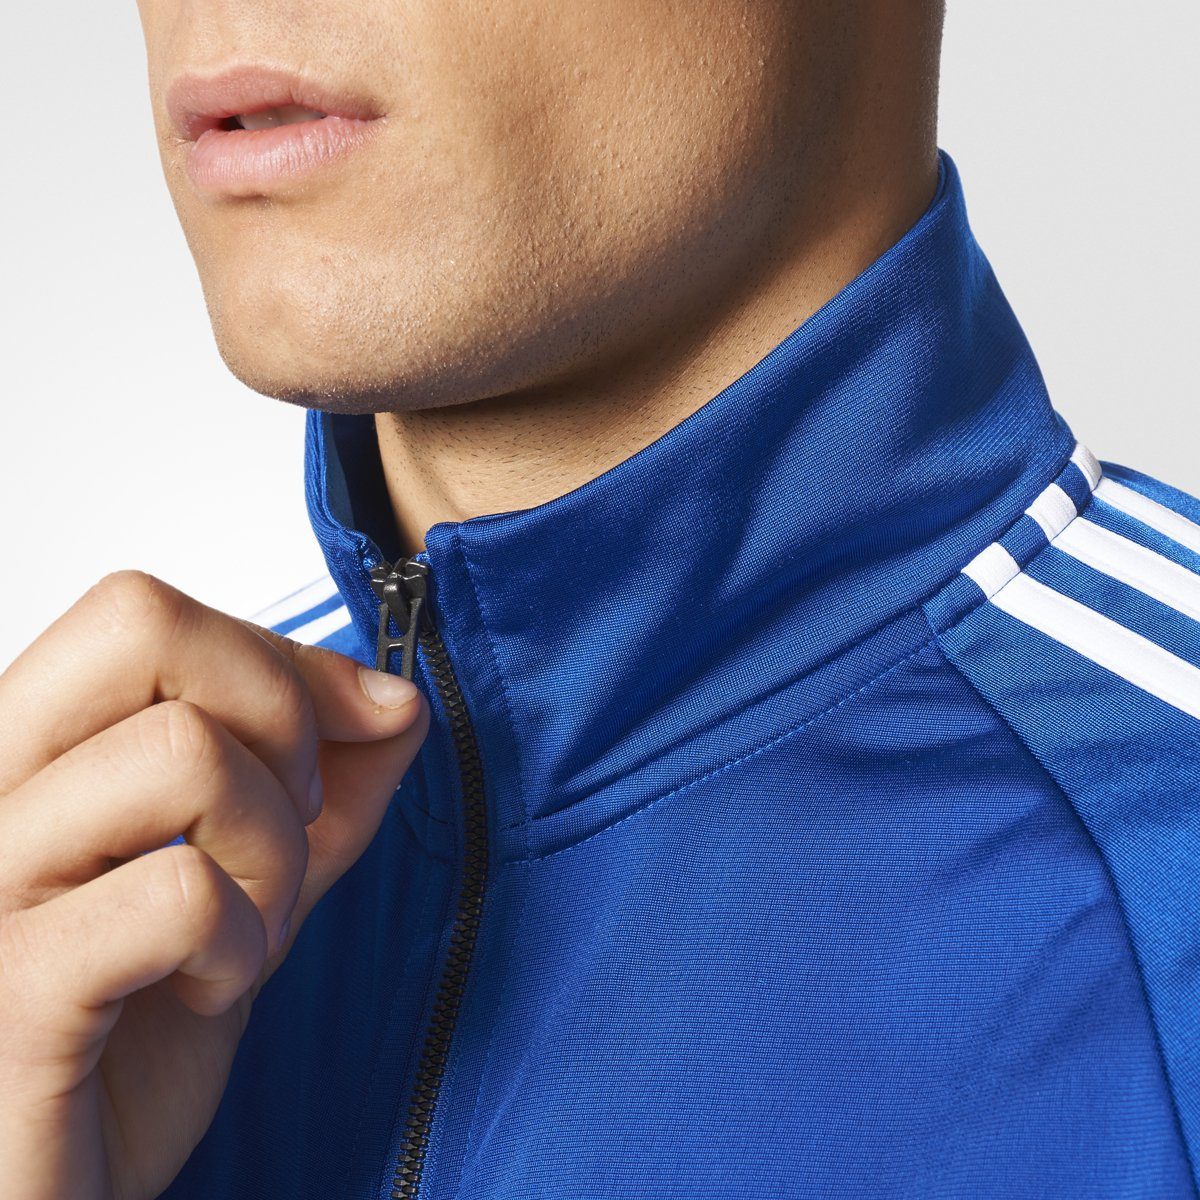 adidas Essentials 3S Tricot Track Jacket Men's All Sports S Collegiate Royal-White by adidas (Image #4)